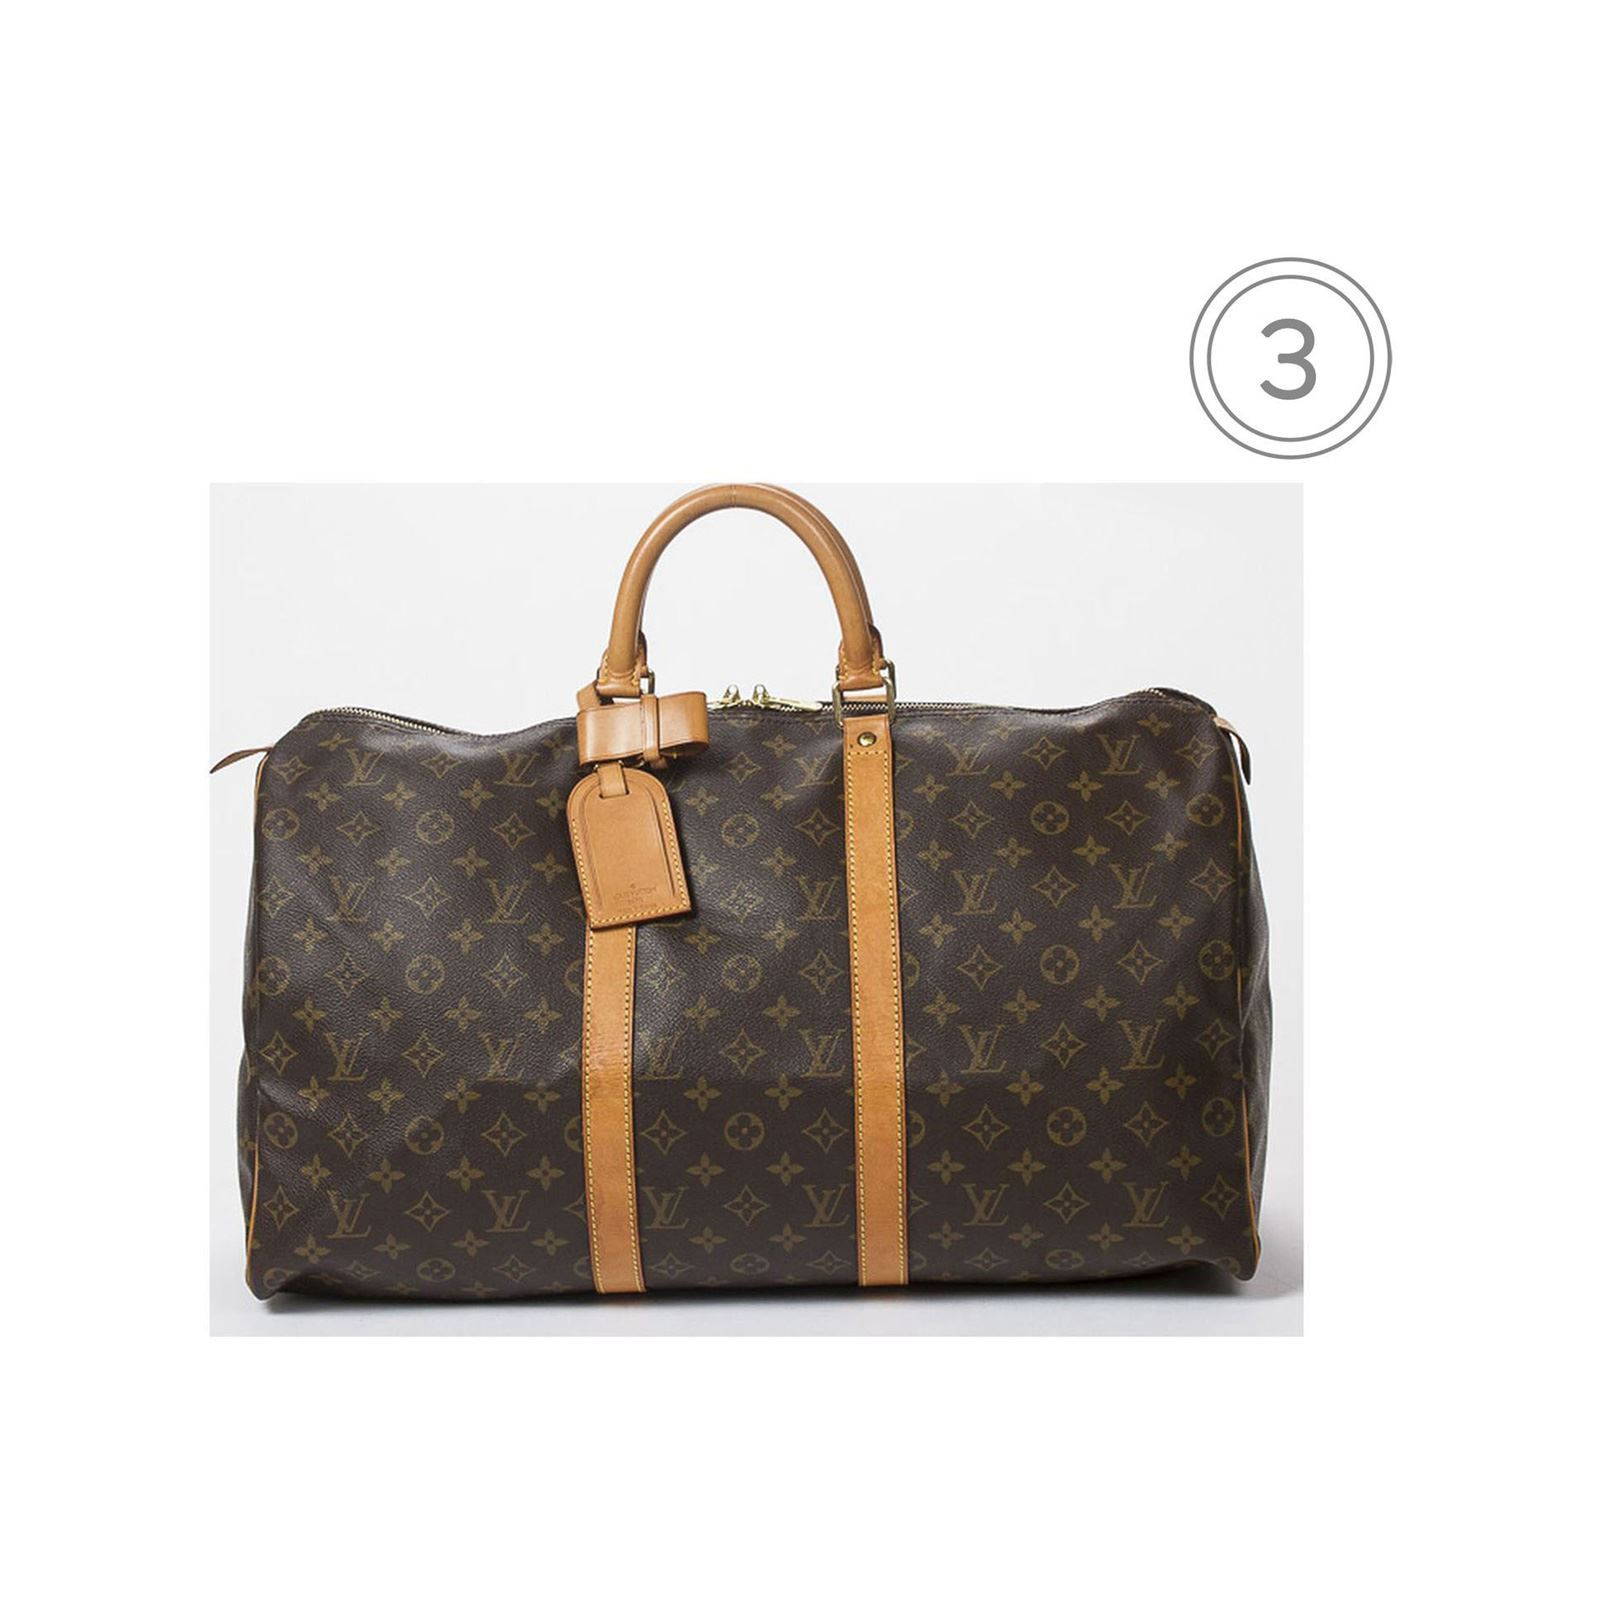 louis vuitton keepall 50 reisetasche monogram canvas brandalley. Black Bedroom Furniture Sets. Home Design Ideas